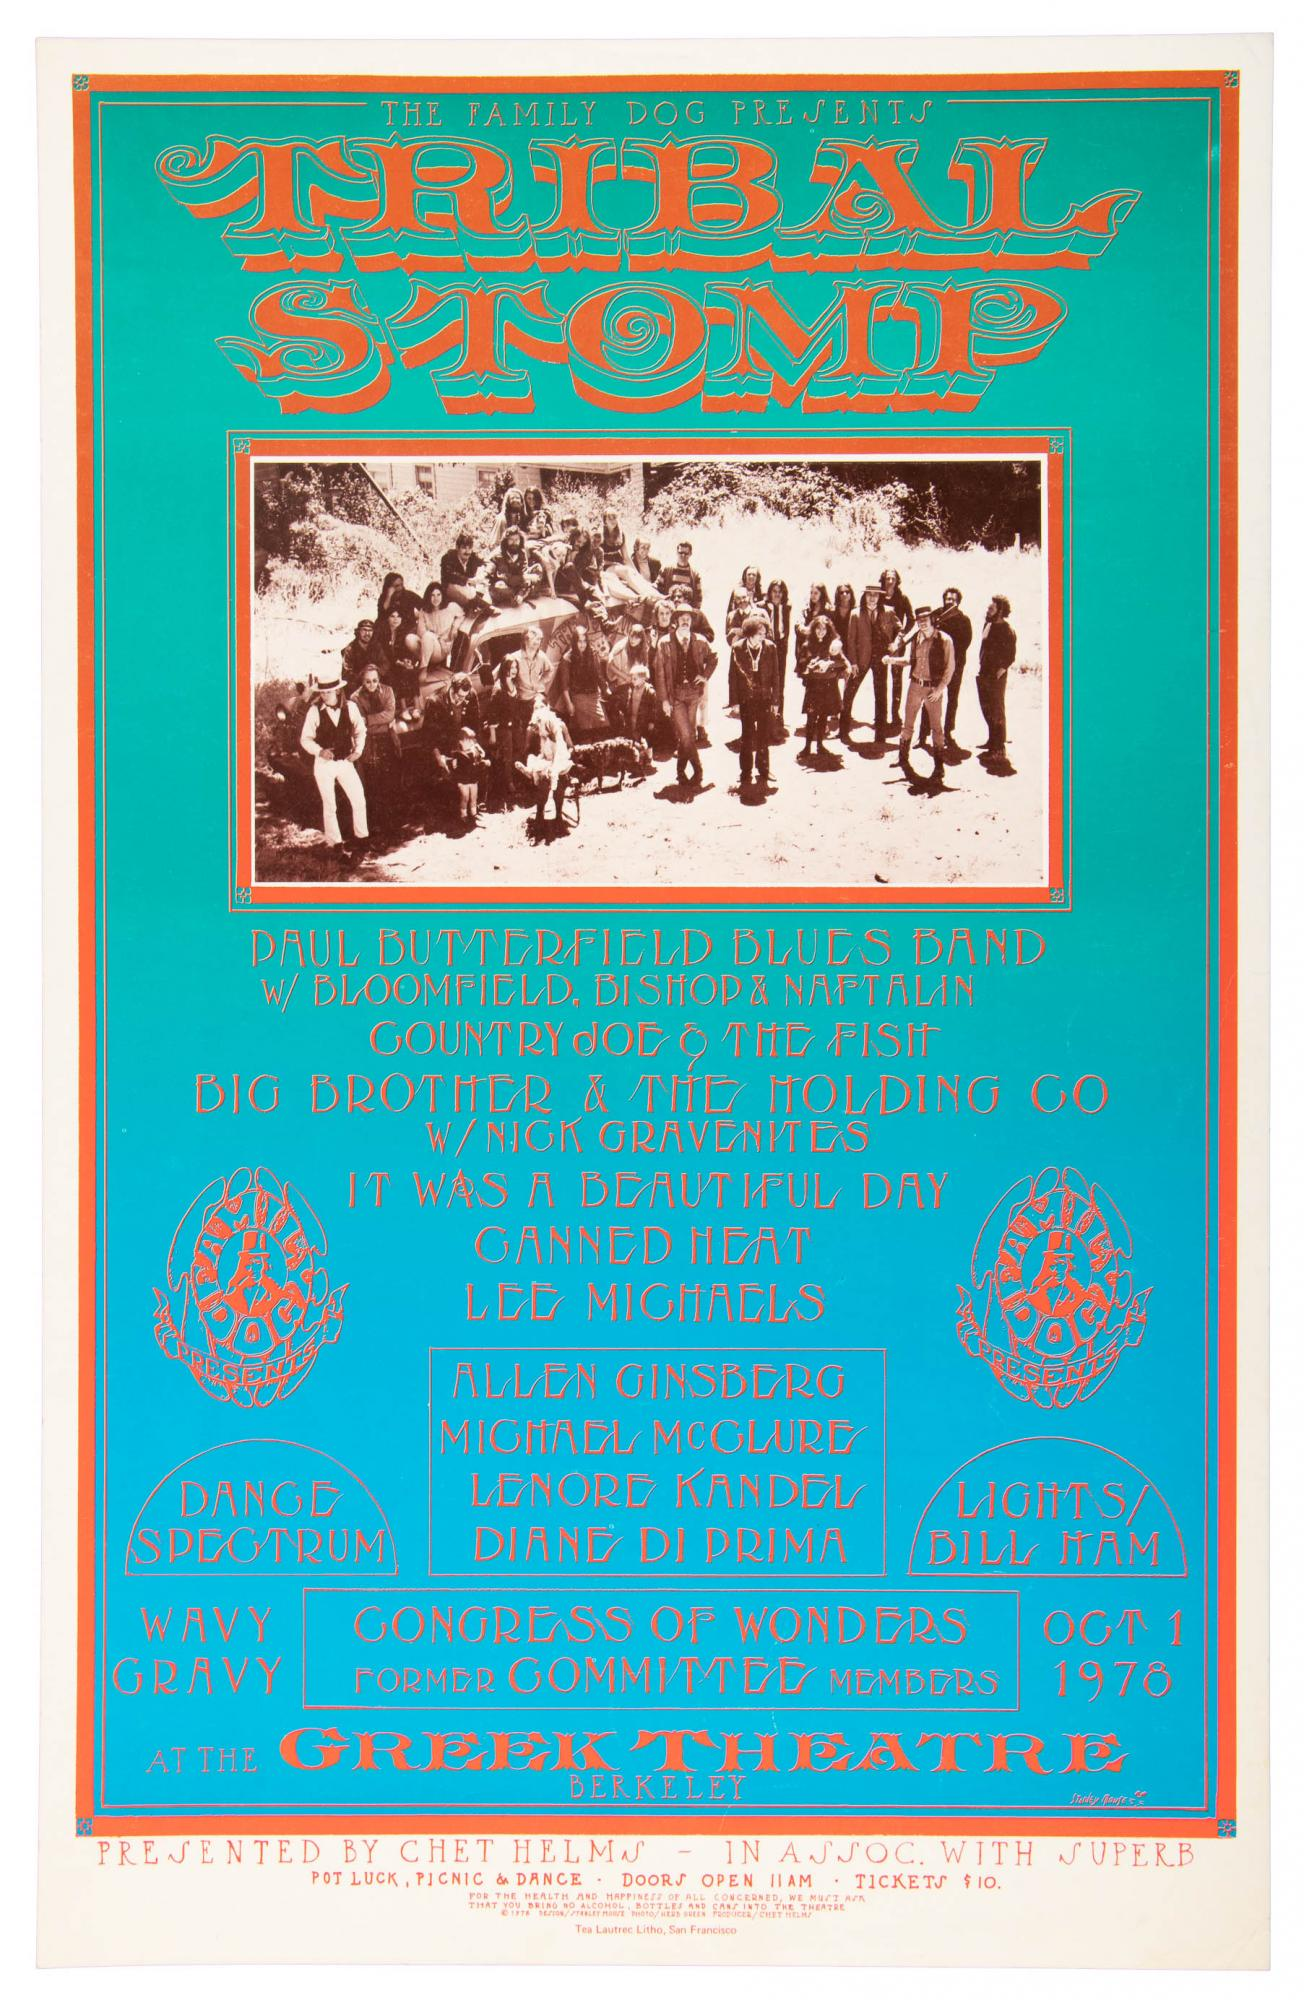 Tribal Stomp event poster, 1978